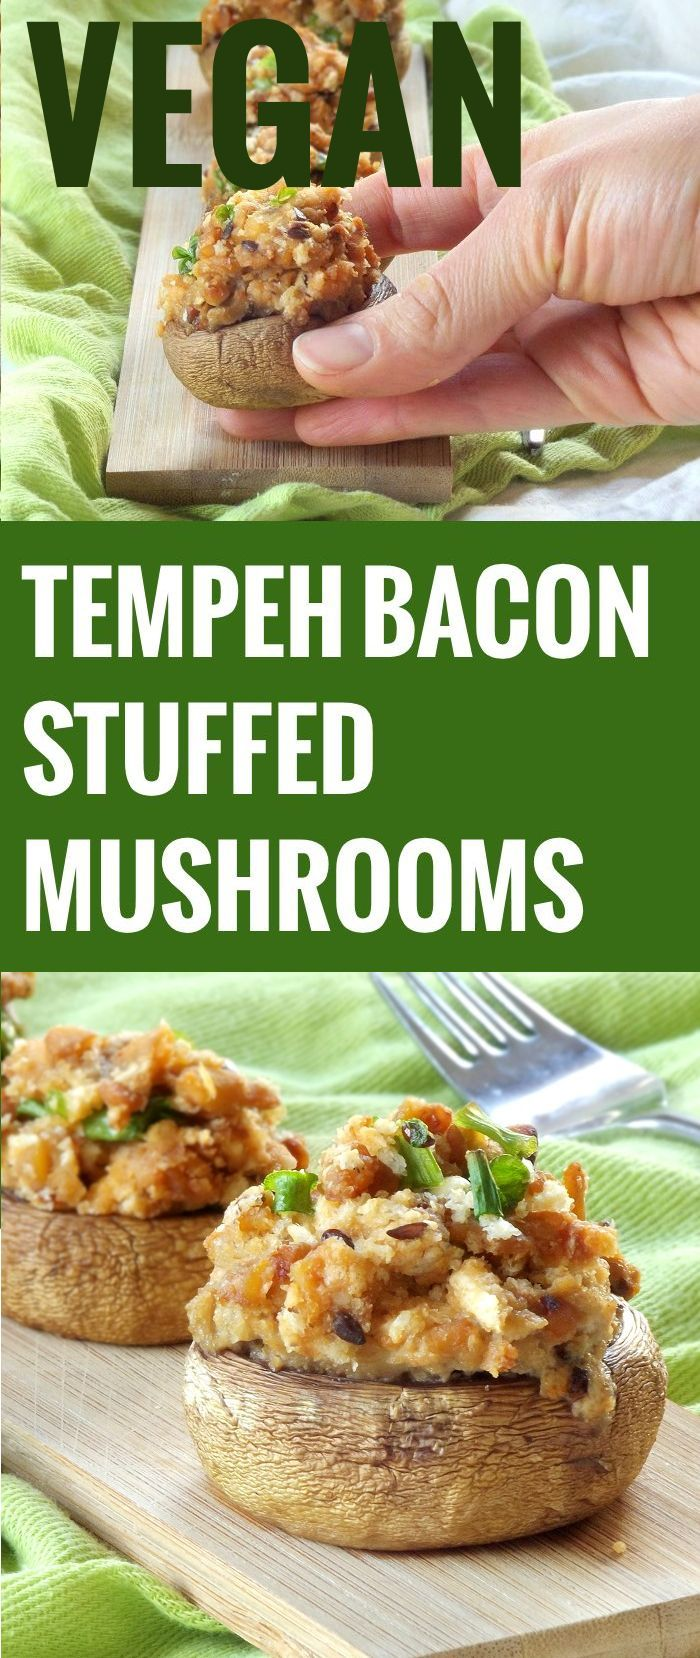 Tempeh Bacon Stuffed Mushrooms